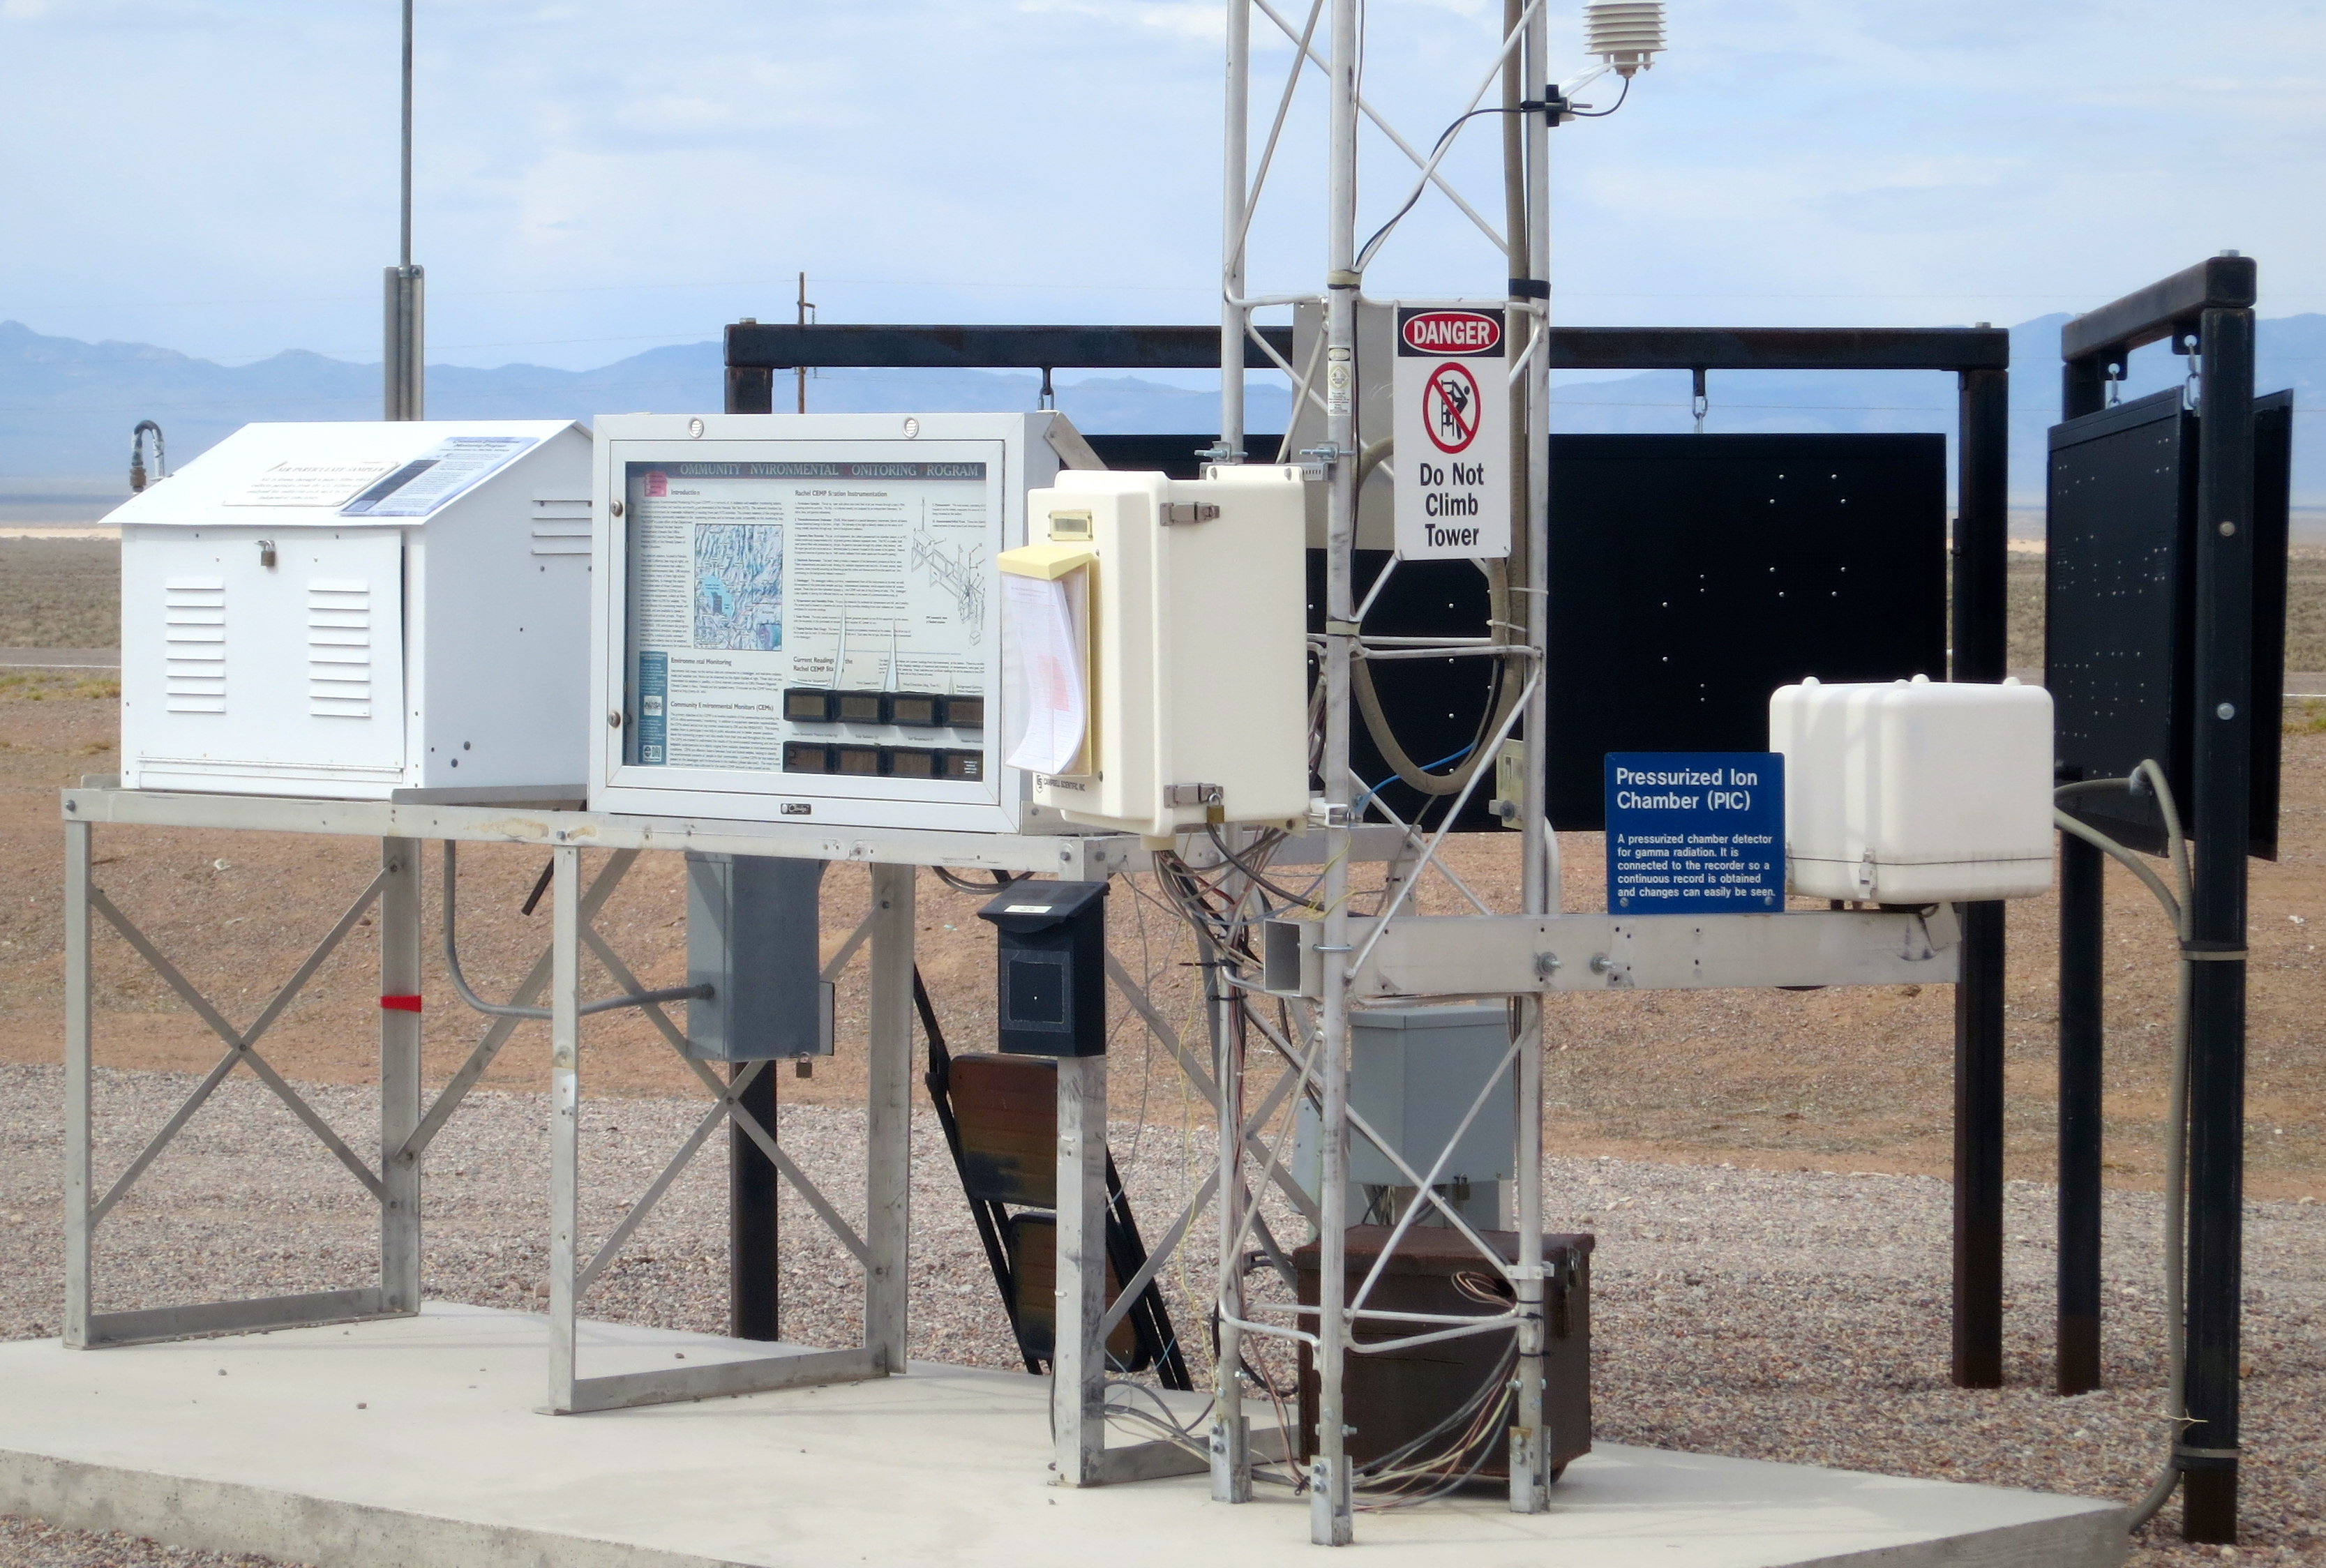 Monitoring for radiation downwind from the Nevada Atomic Test Site is serious business. Even today– years after the testing was halted. This station is found in Rachel but there are several more scattered throughout the region.